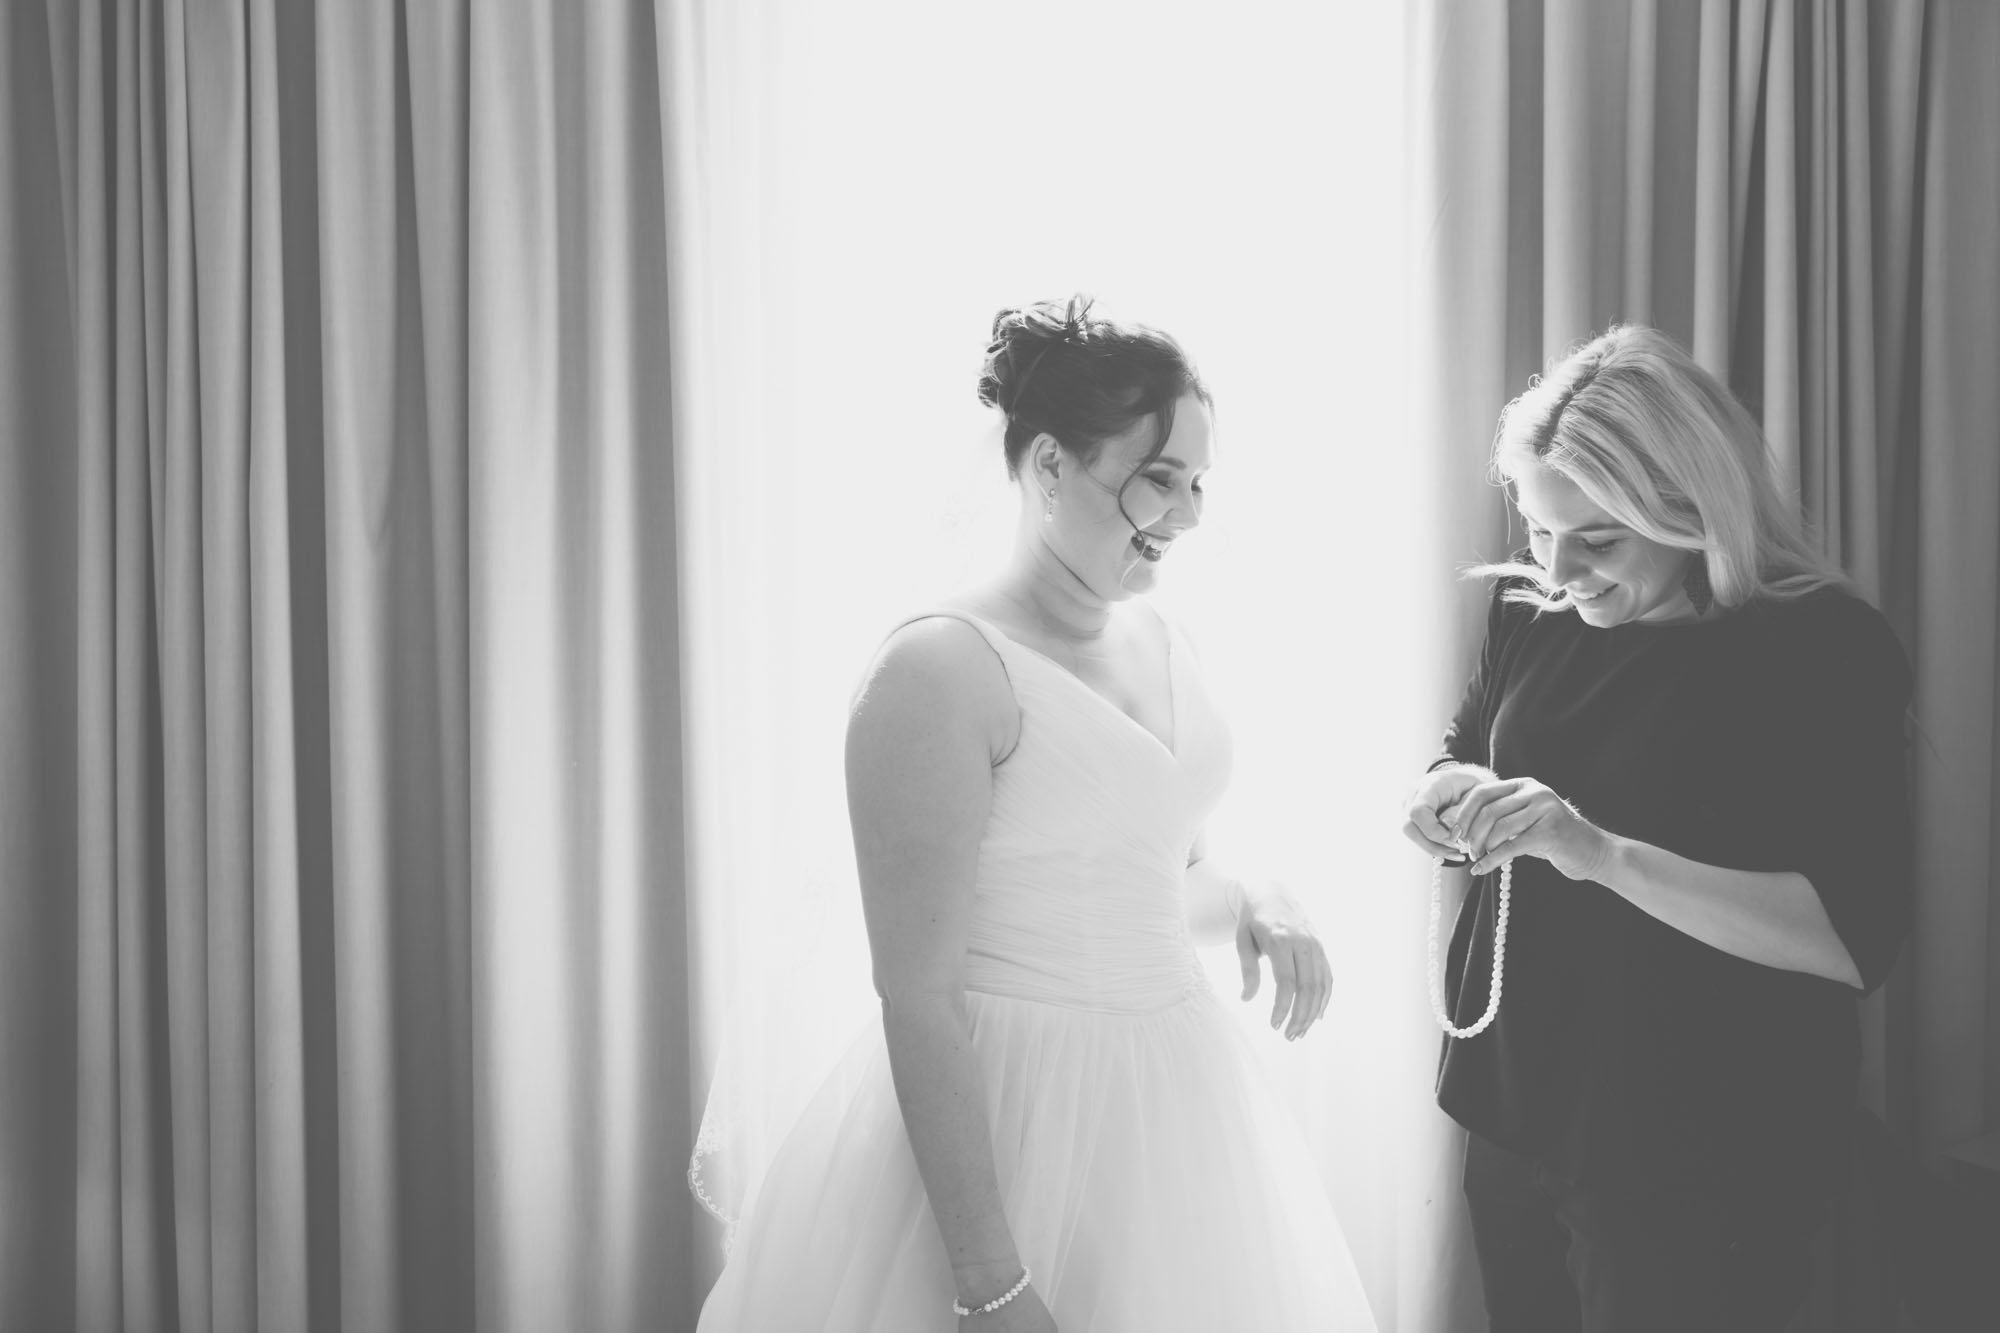 KelliMatt_PrincessTheatreBrisbaneWedding_AnnaOsetroffPhotographer_Website-25